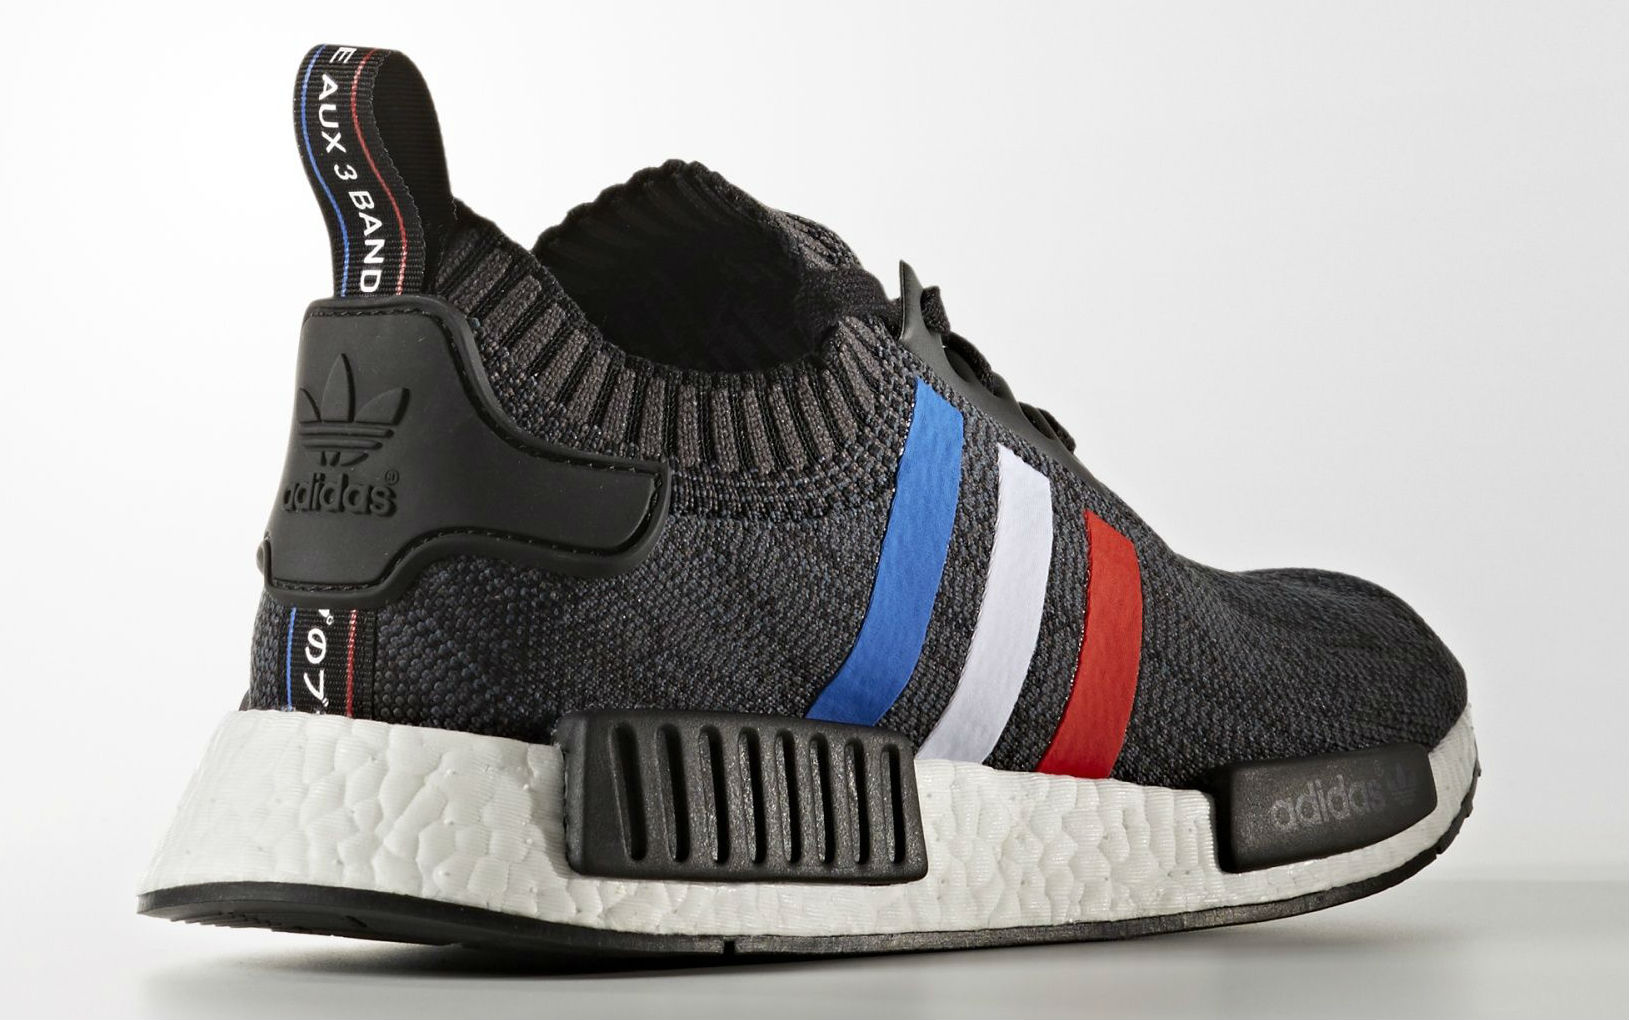 adidas-nmd-pk-black-red-white-blue-stripes-5_ugas4x